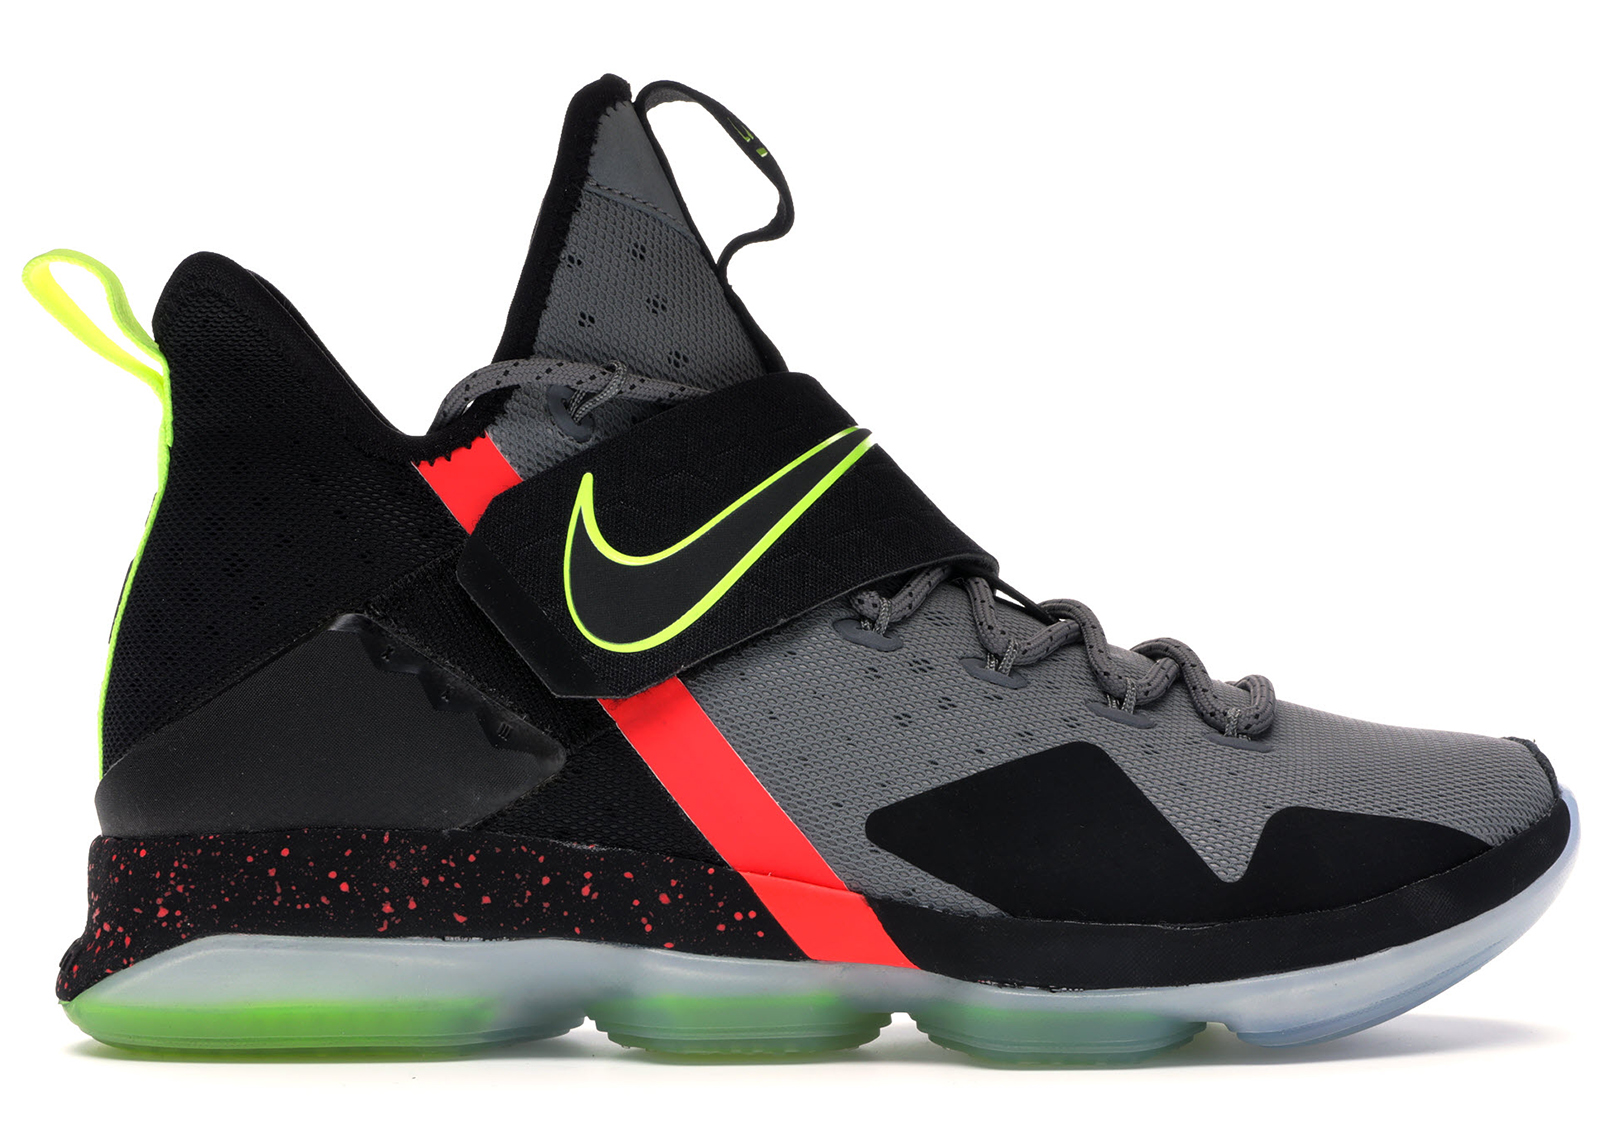 Nike LeBron 14 Out of Nowhere - 852406-001